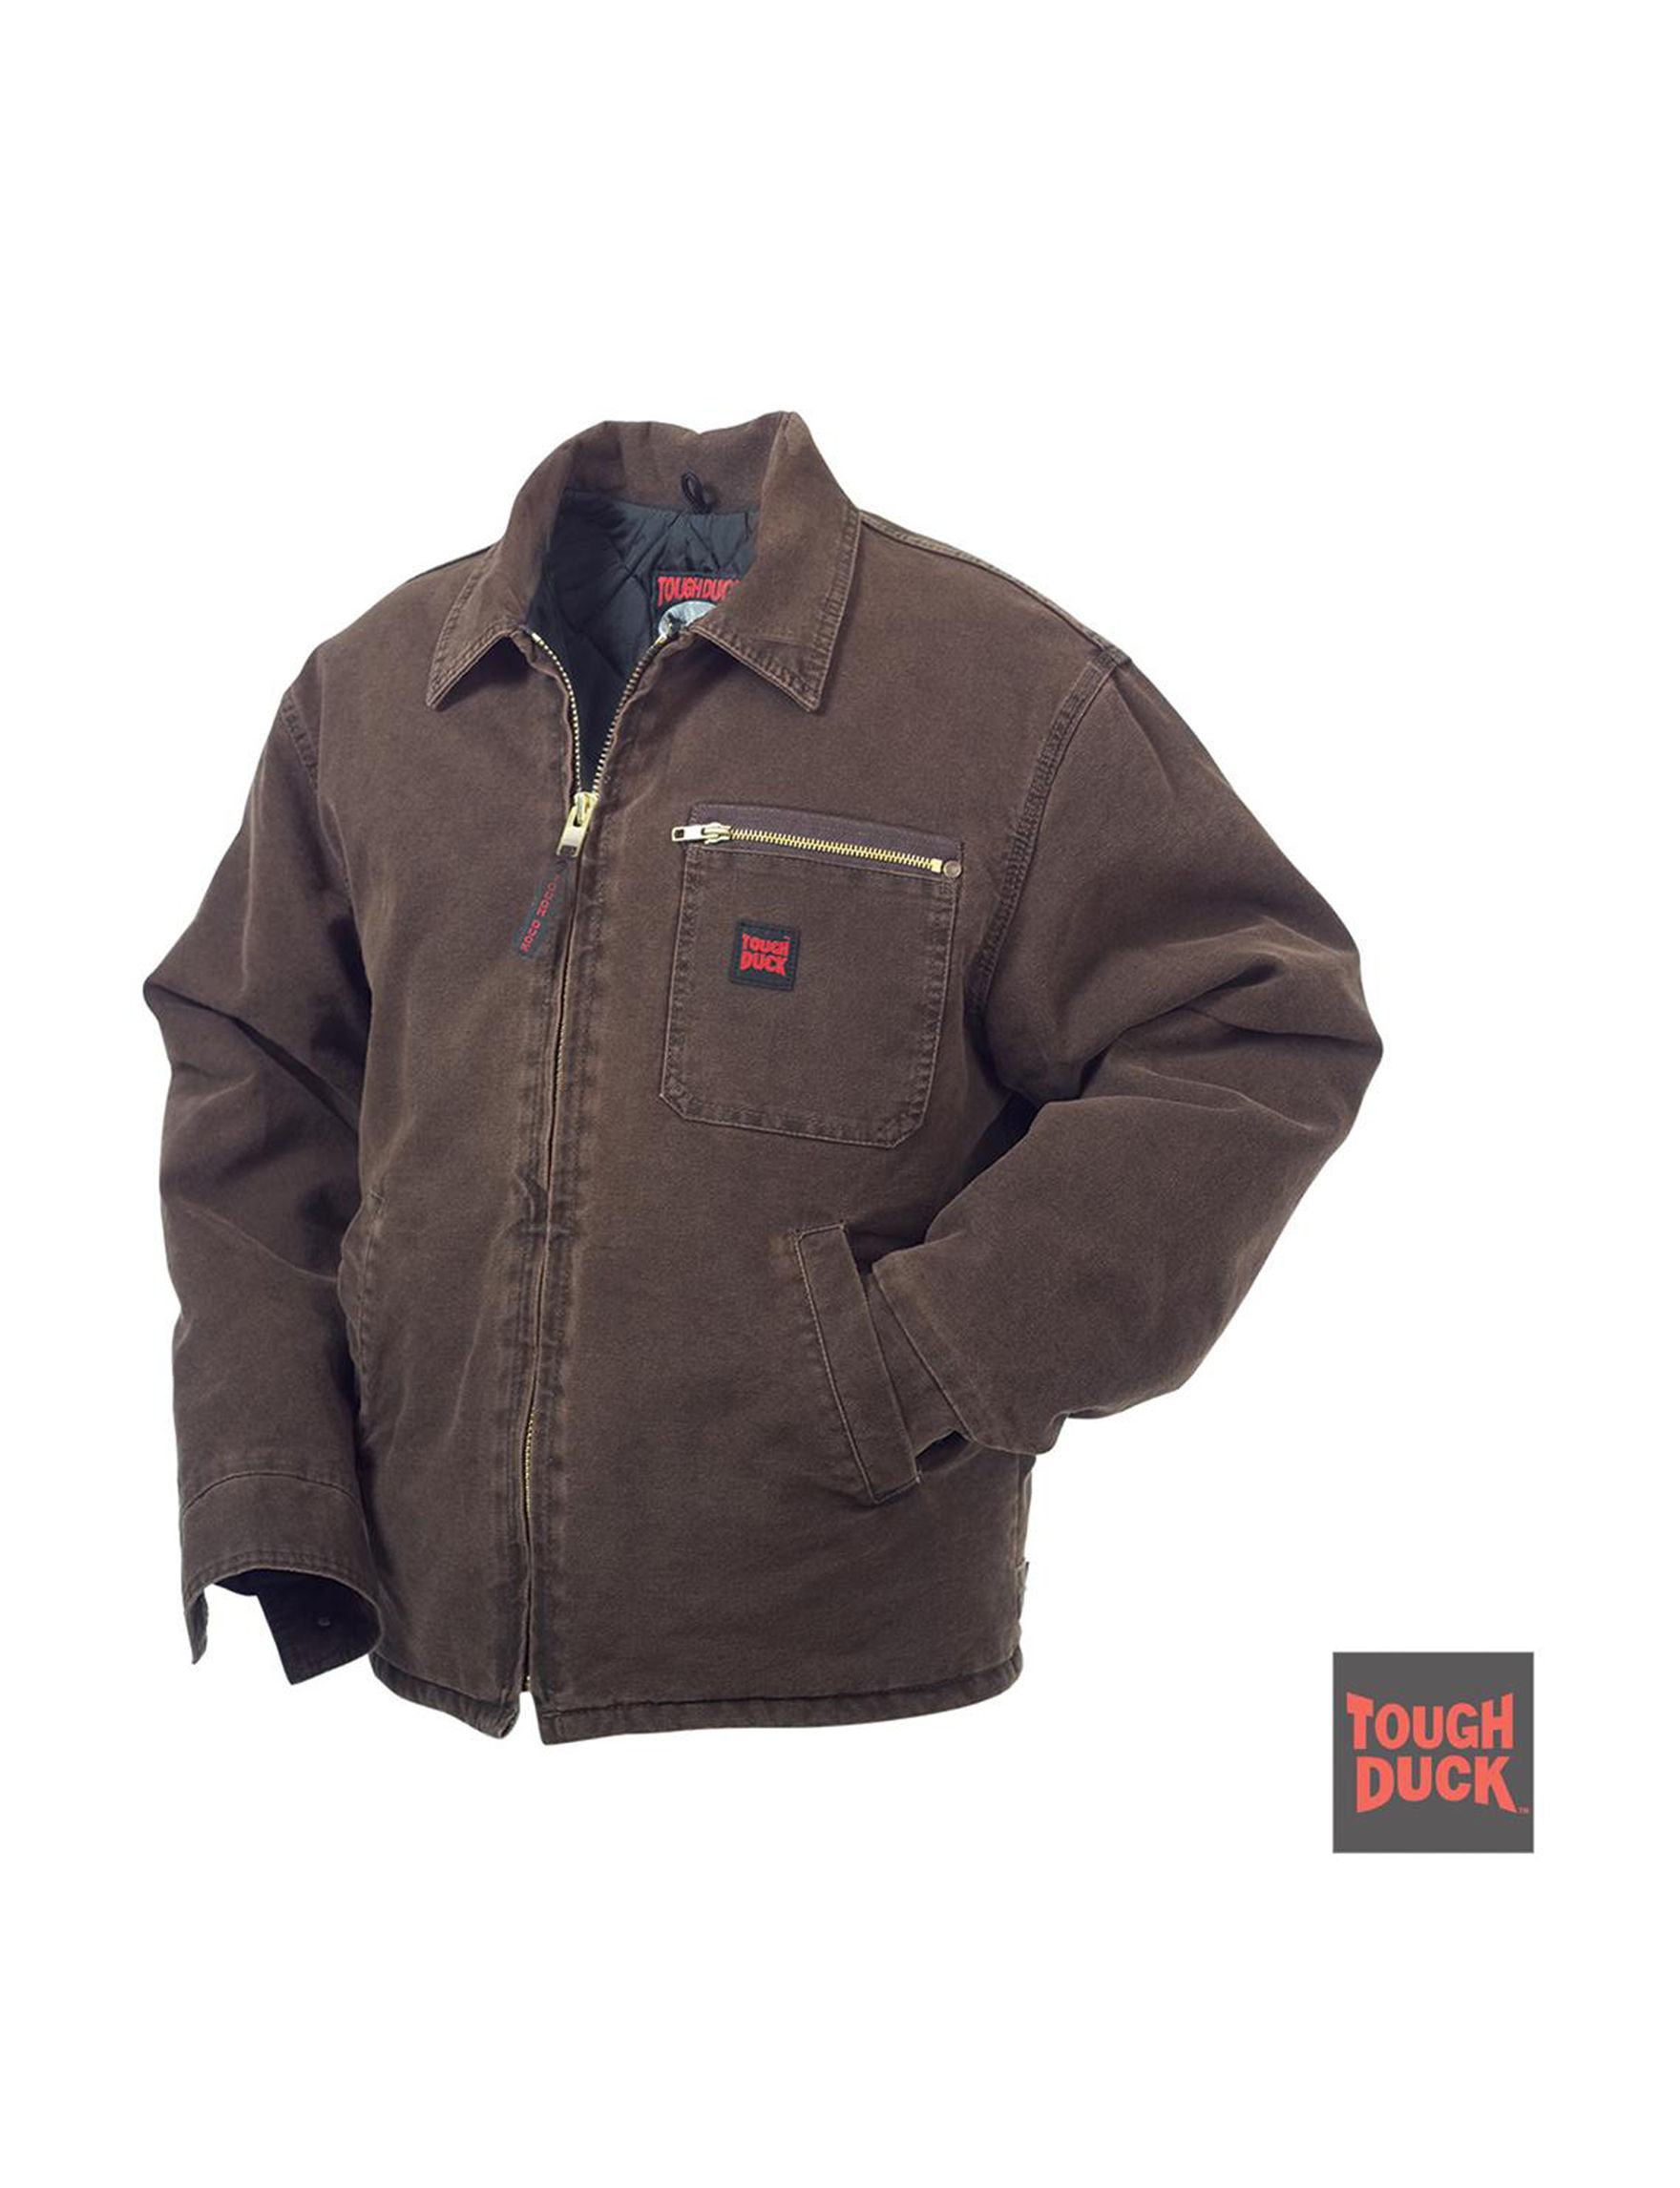 Tough Duck Chestnut Insulated Jackets